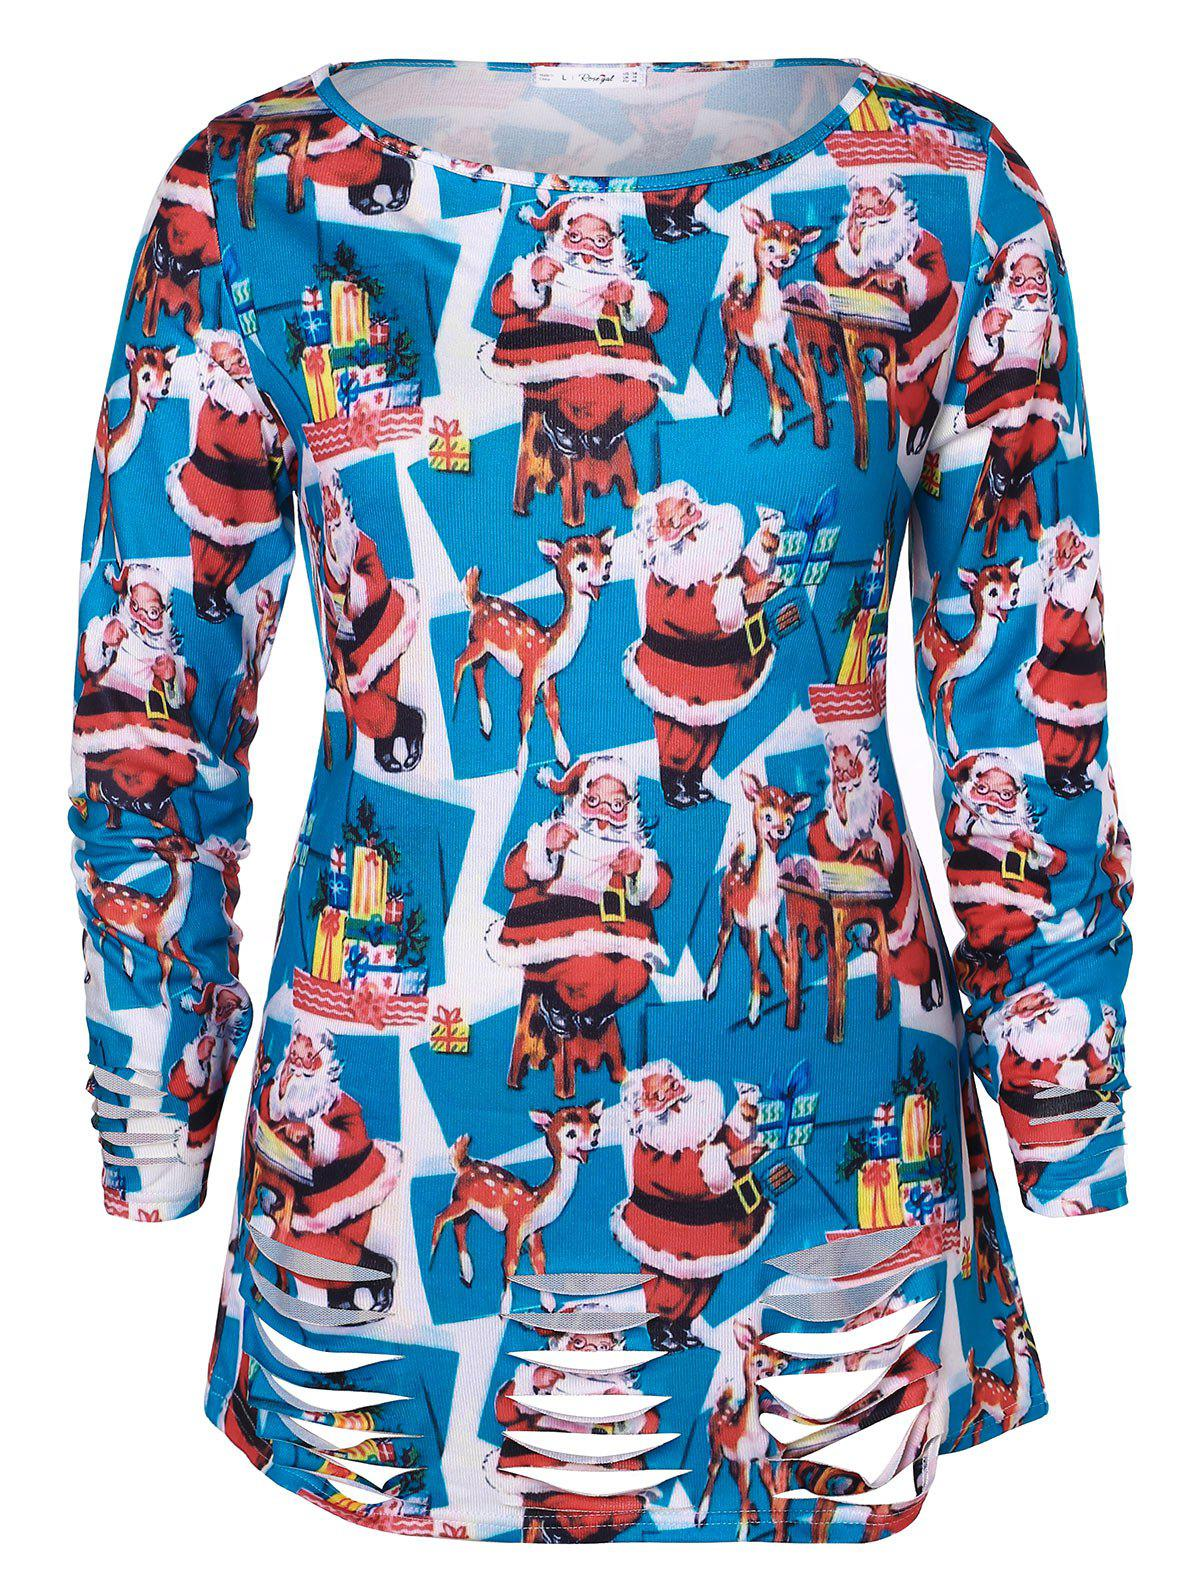 Christmas Plus Size Santa Claus Print Ripped T-shirt - DEEP SKY BLUE 3X